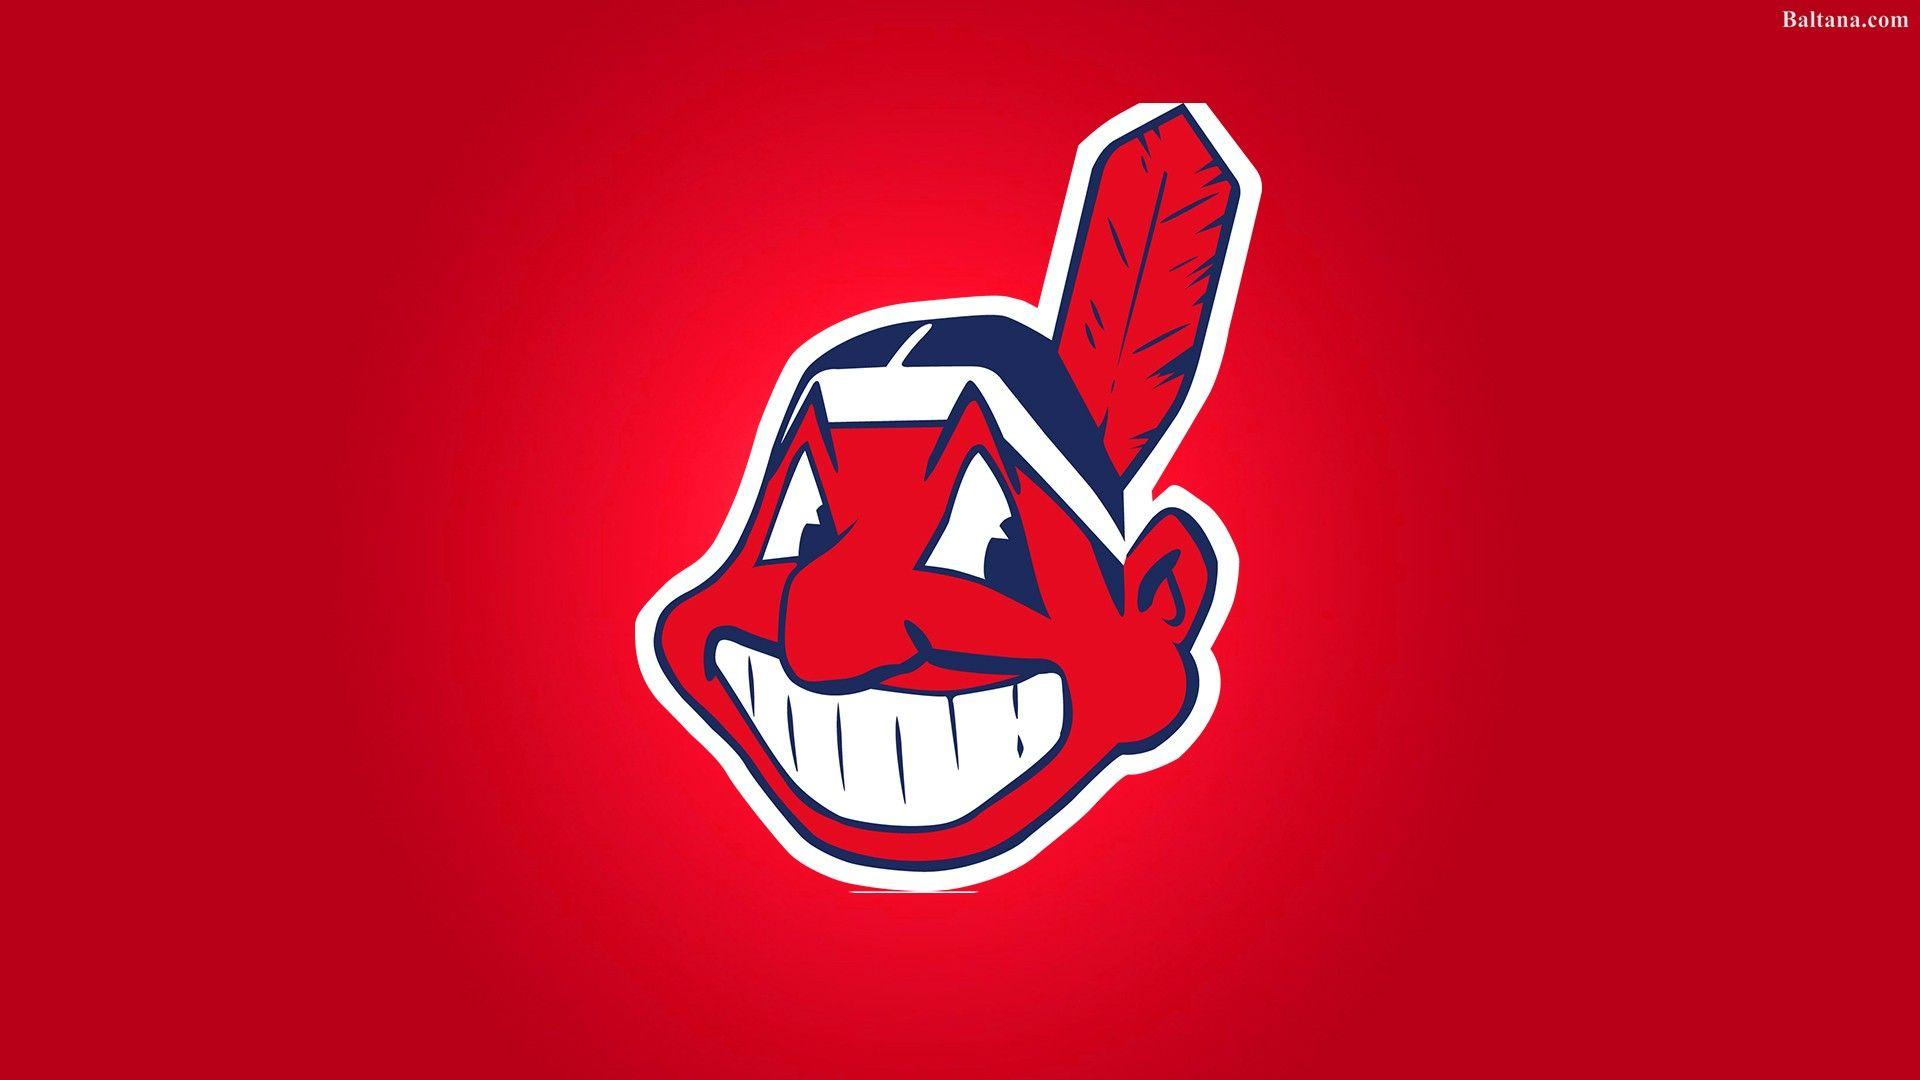 Cleveland Indians 2018 Wallpapers - Wallpaper Cave